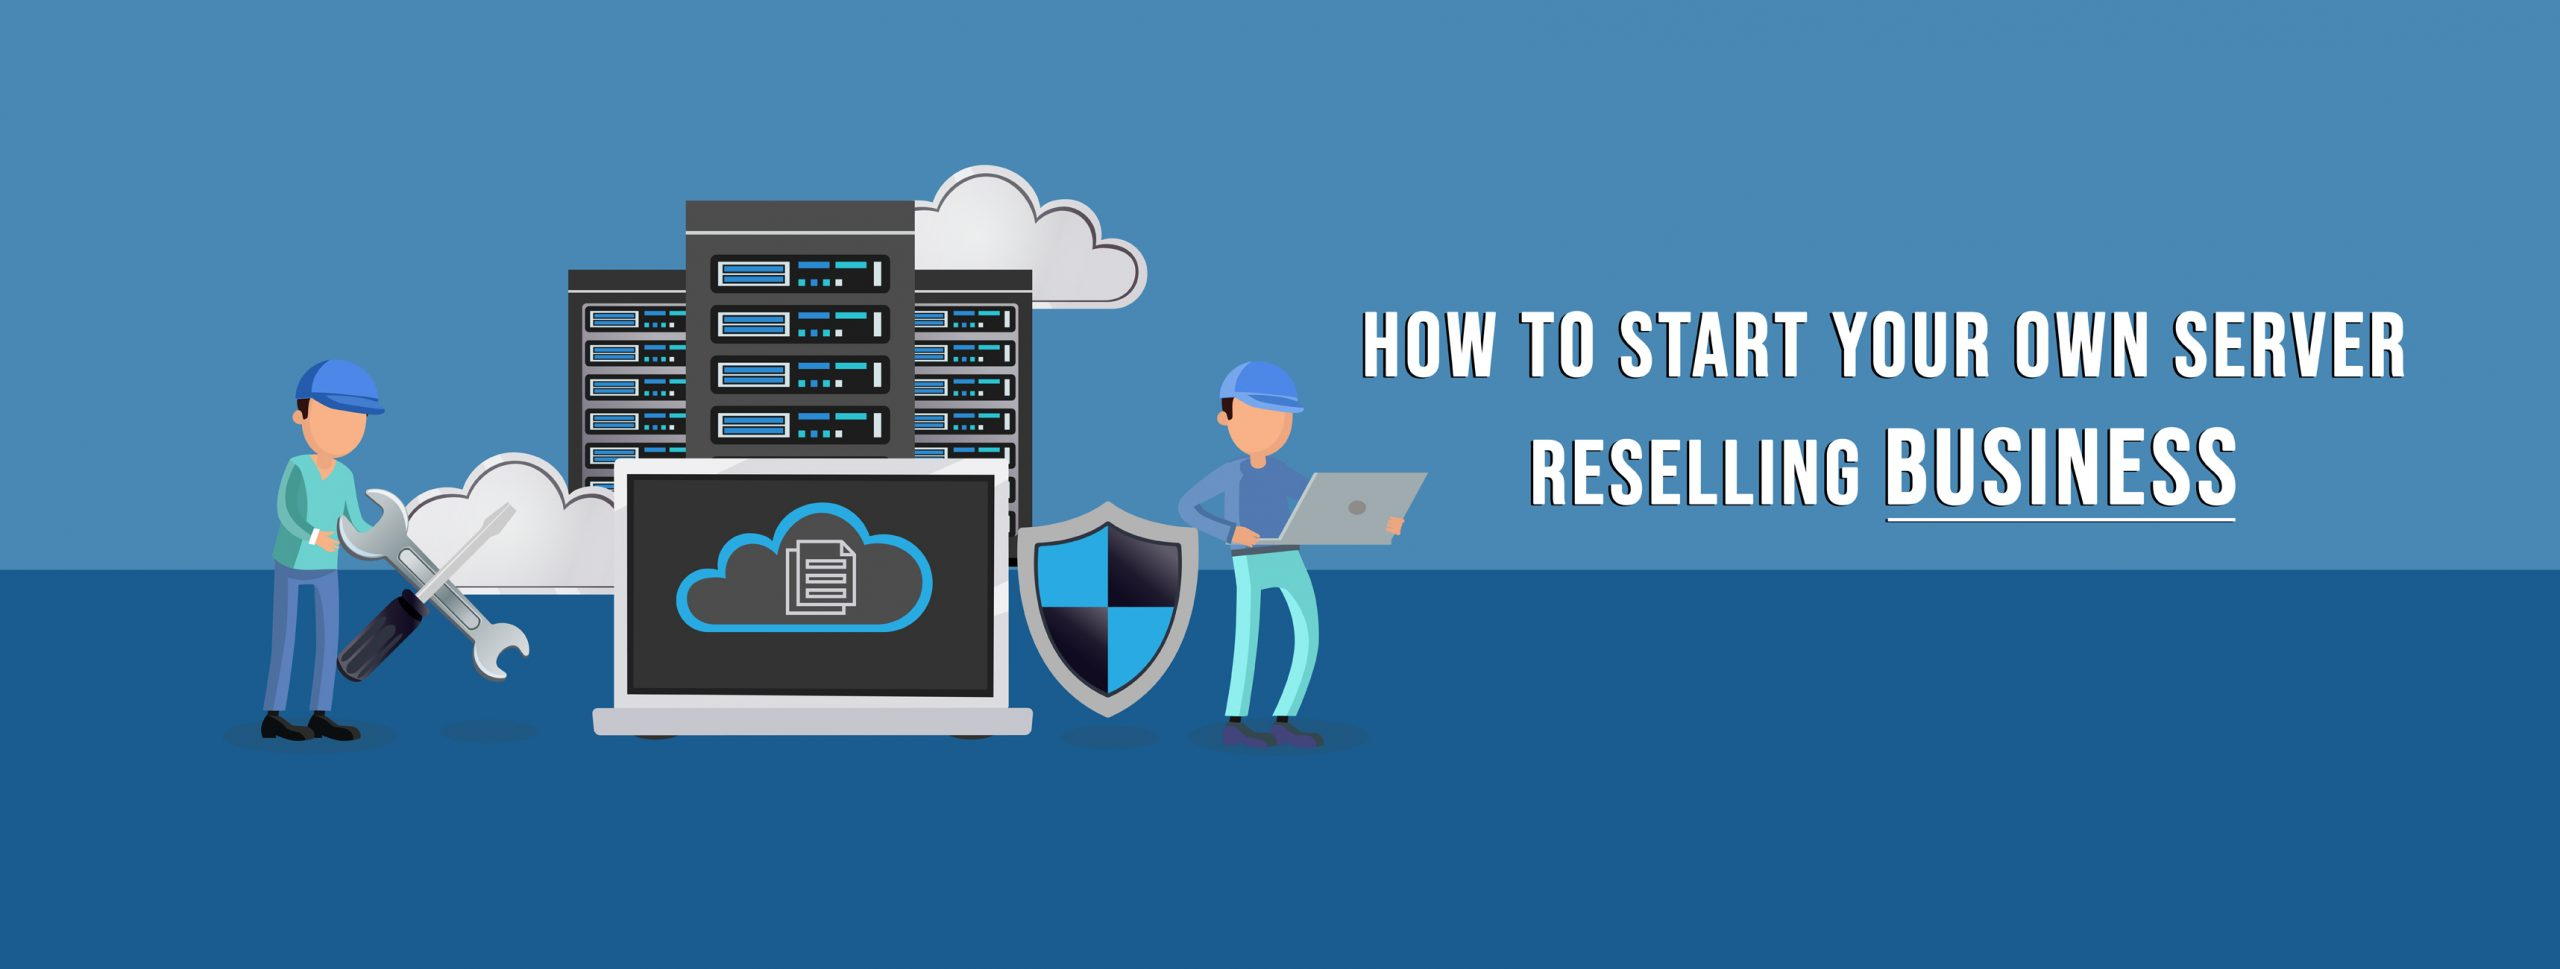 How To Start Your Own Server Reselling Business?